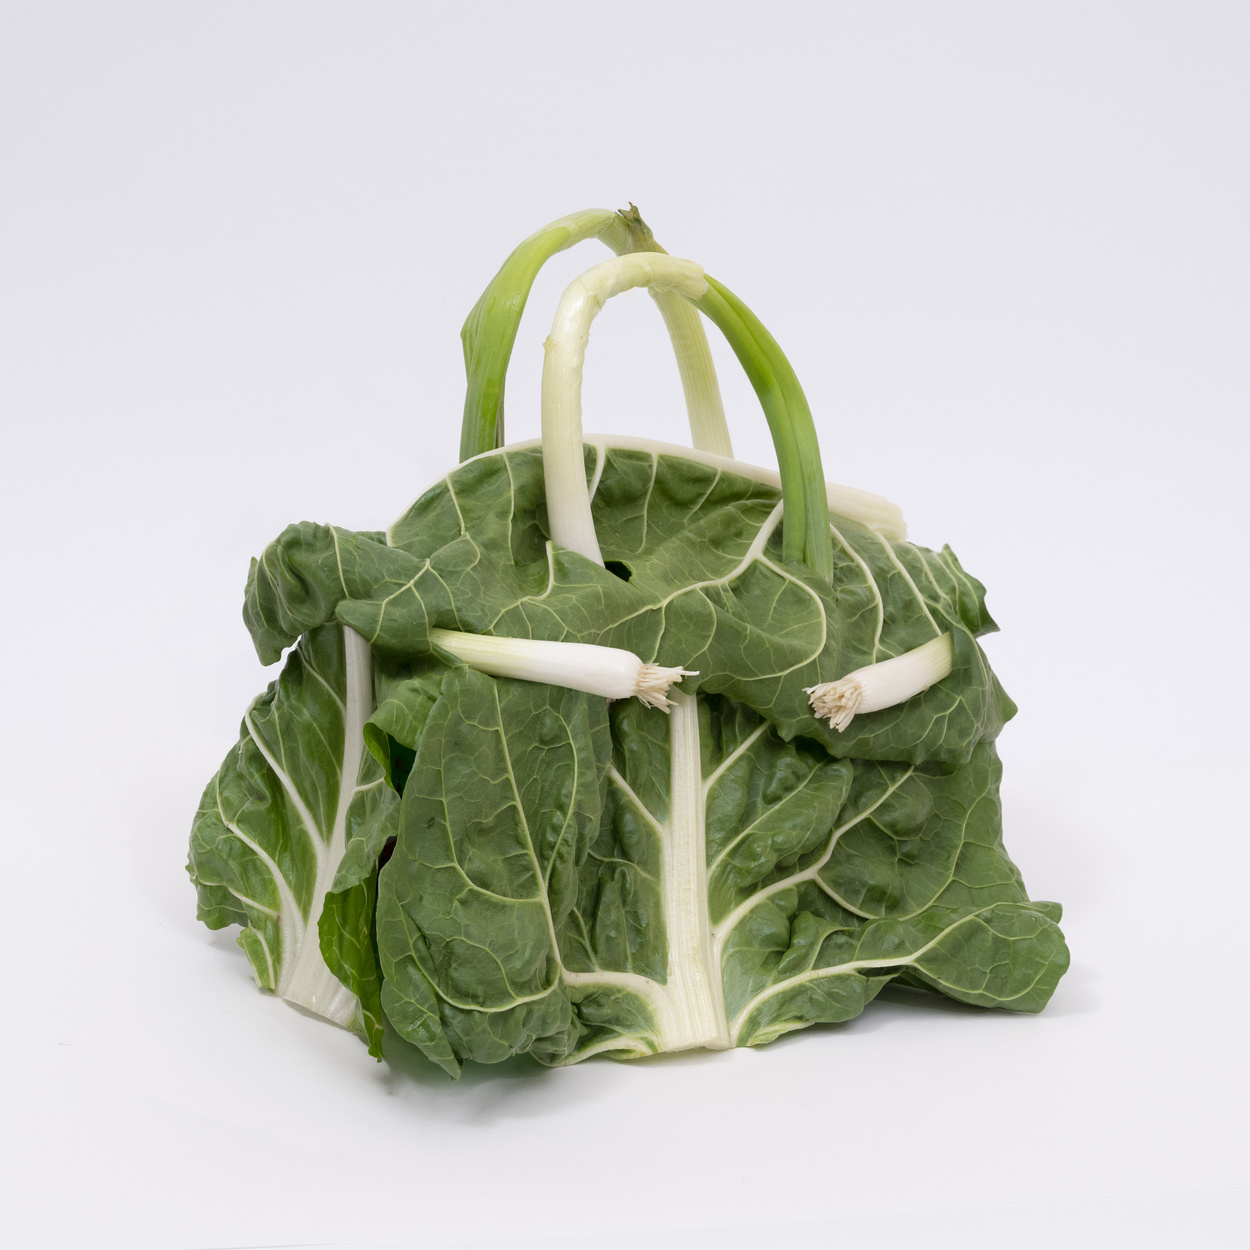 a photo of a birkin bag made from cabbage against a white background